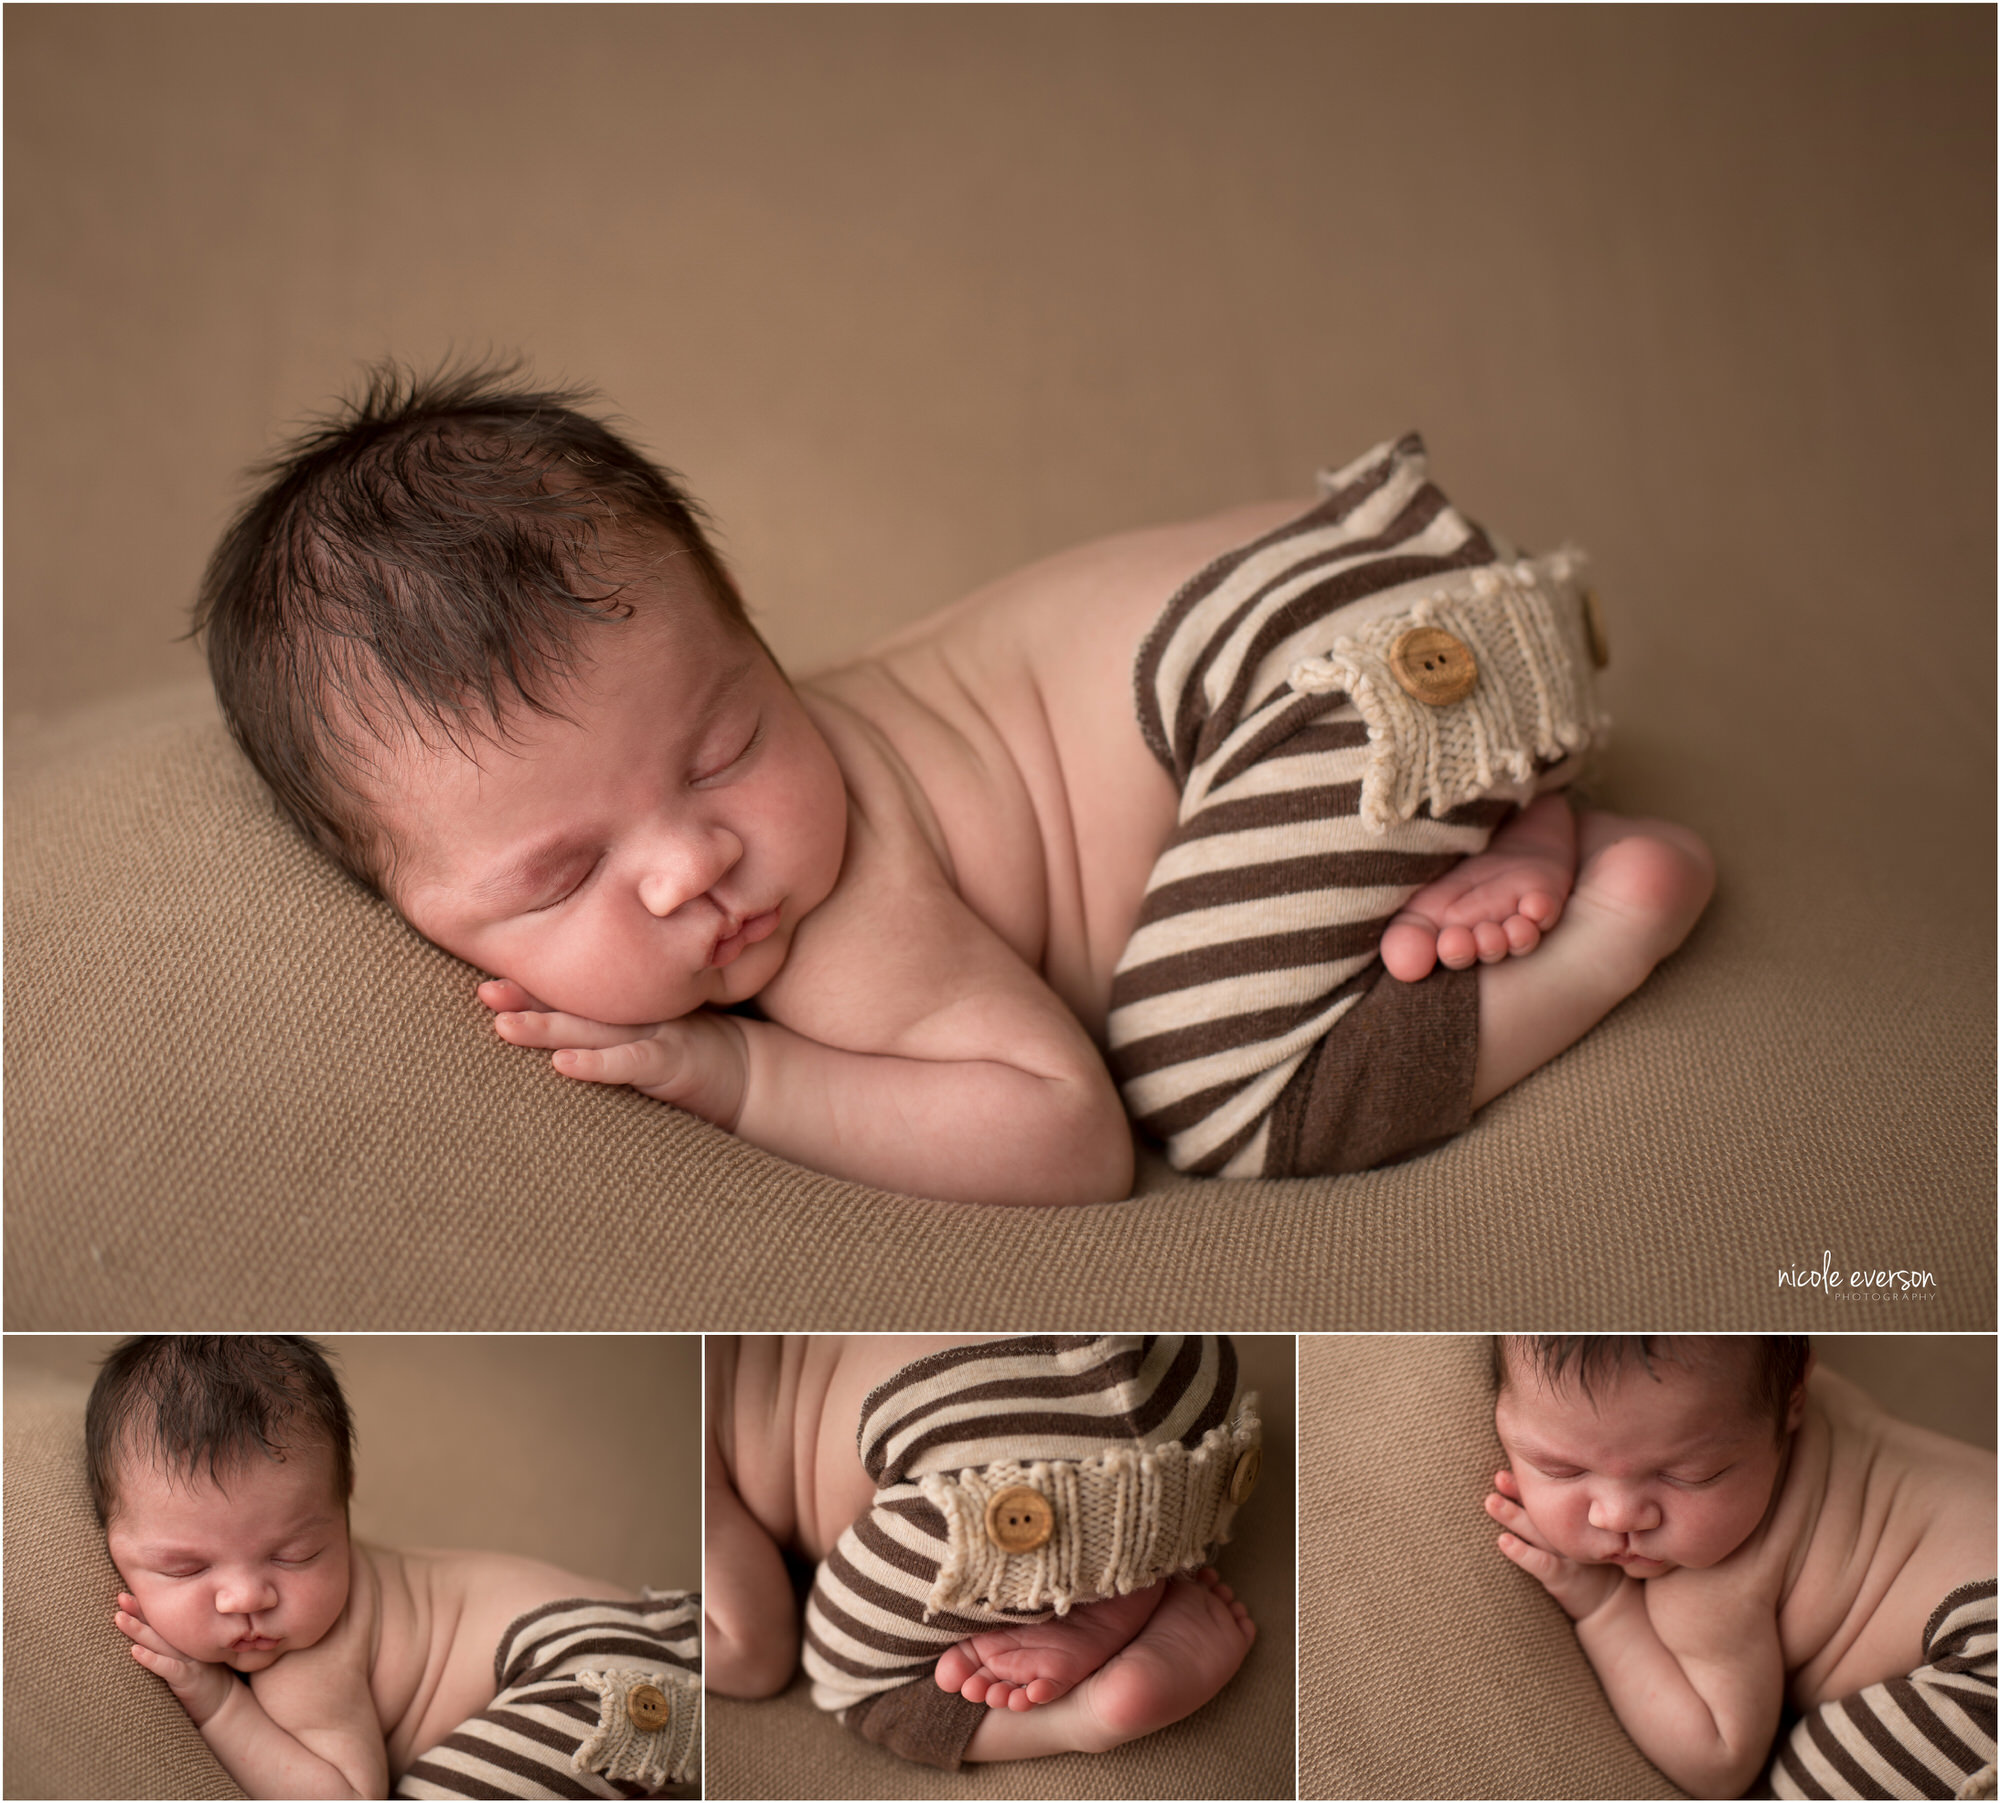 newborn photographed sleeping on a light brown blanket with striped pants